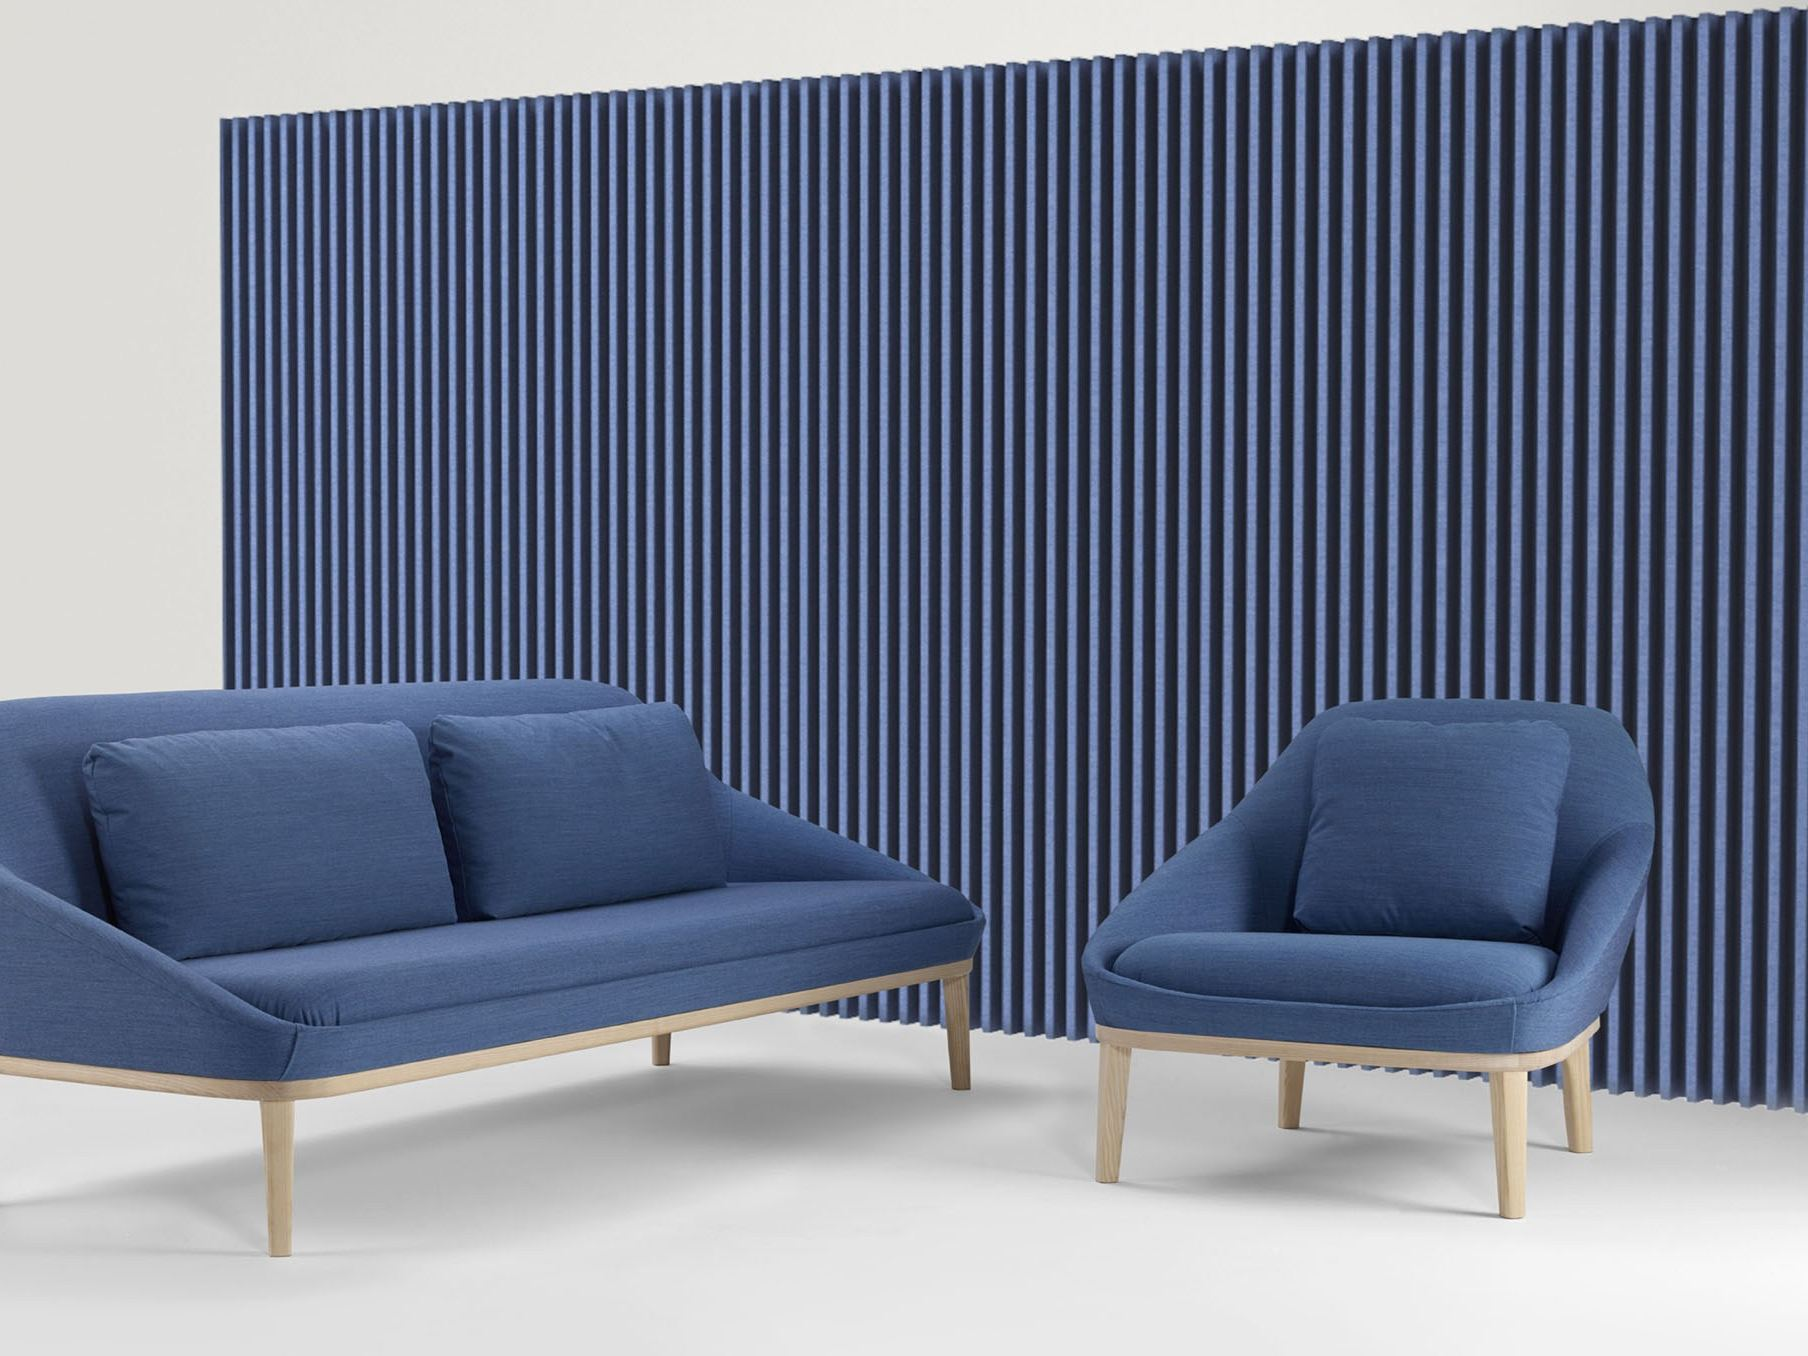 Decorative acoustical panels soundwave wall by offecct design christophe pillet - Decorative acoustic wall panels ...